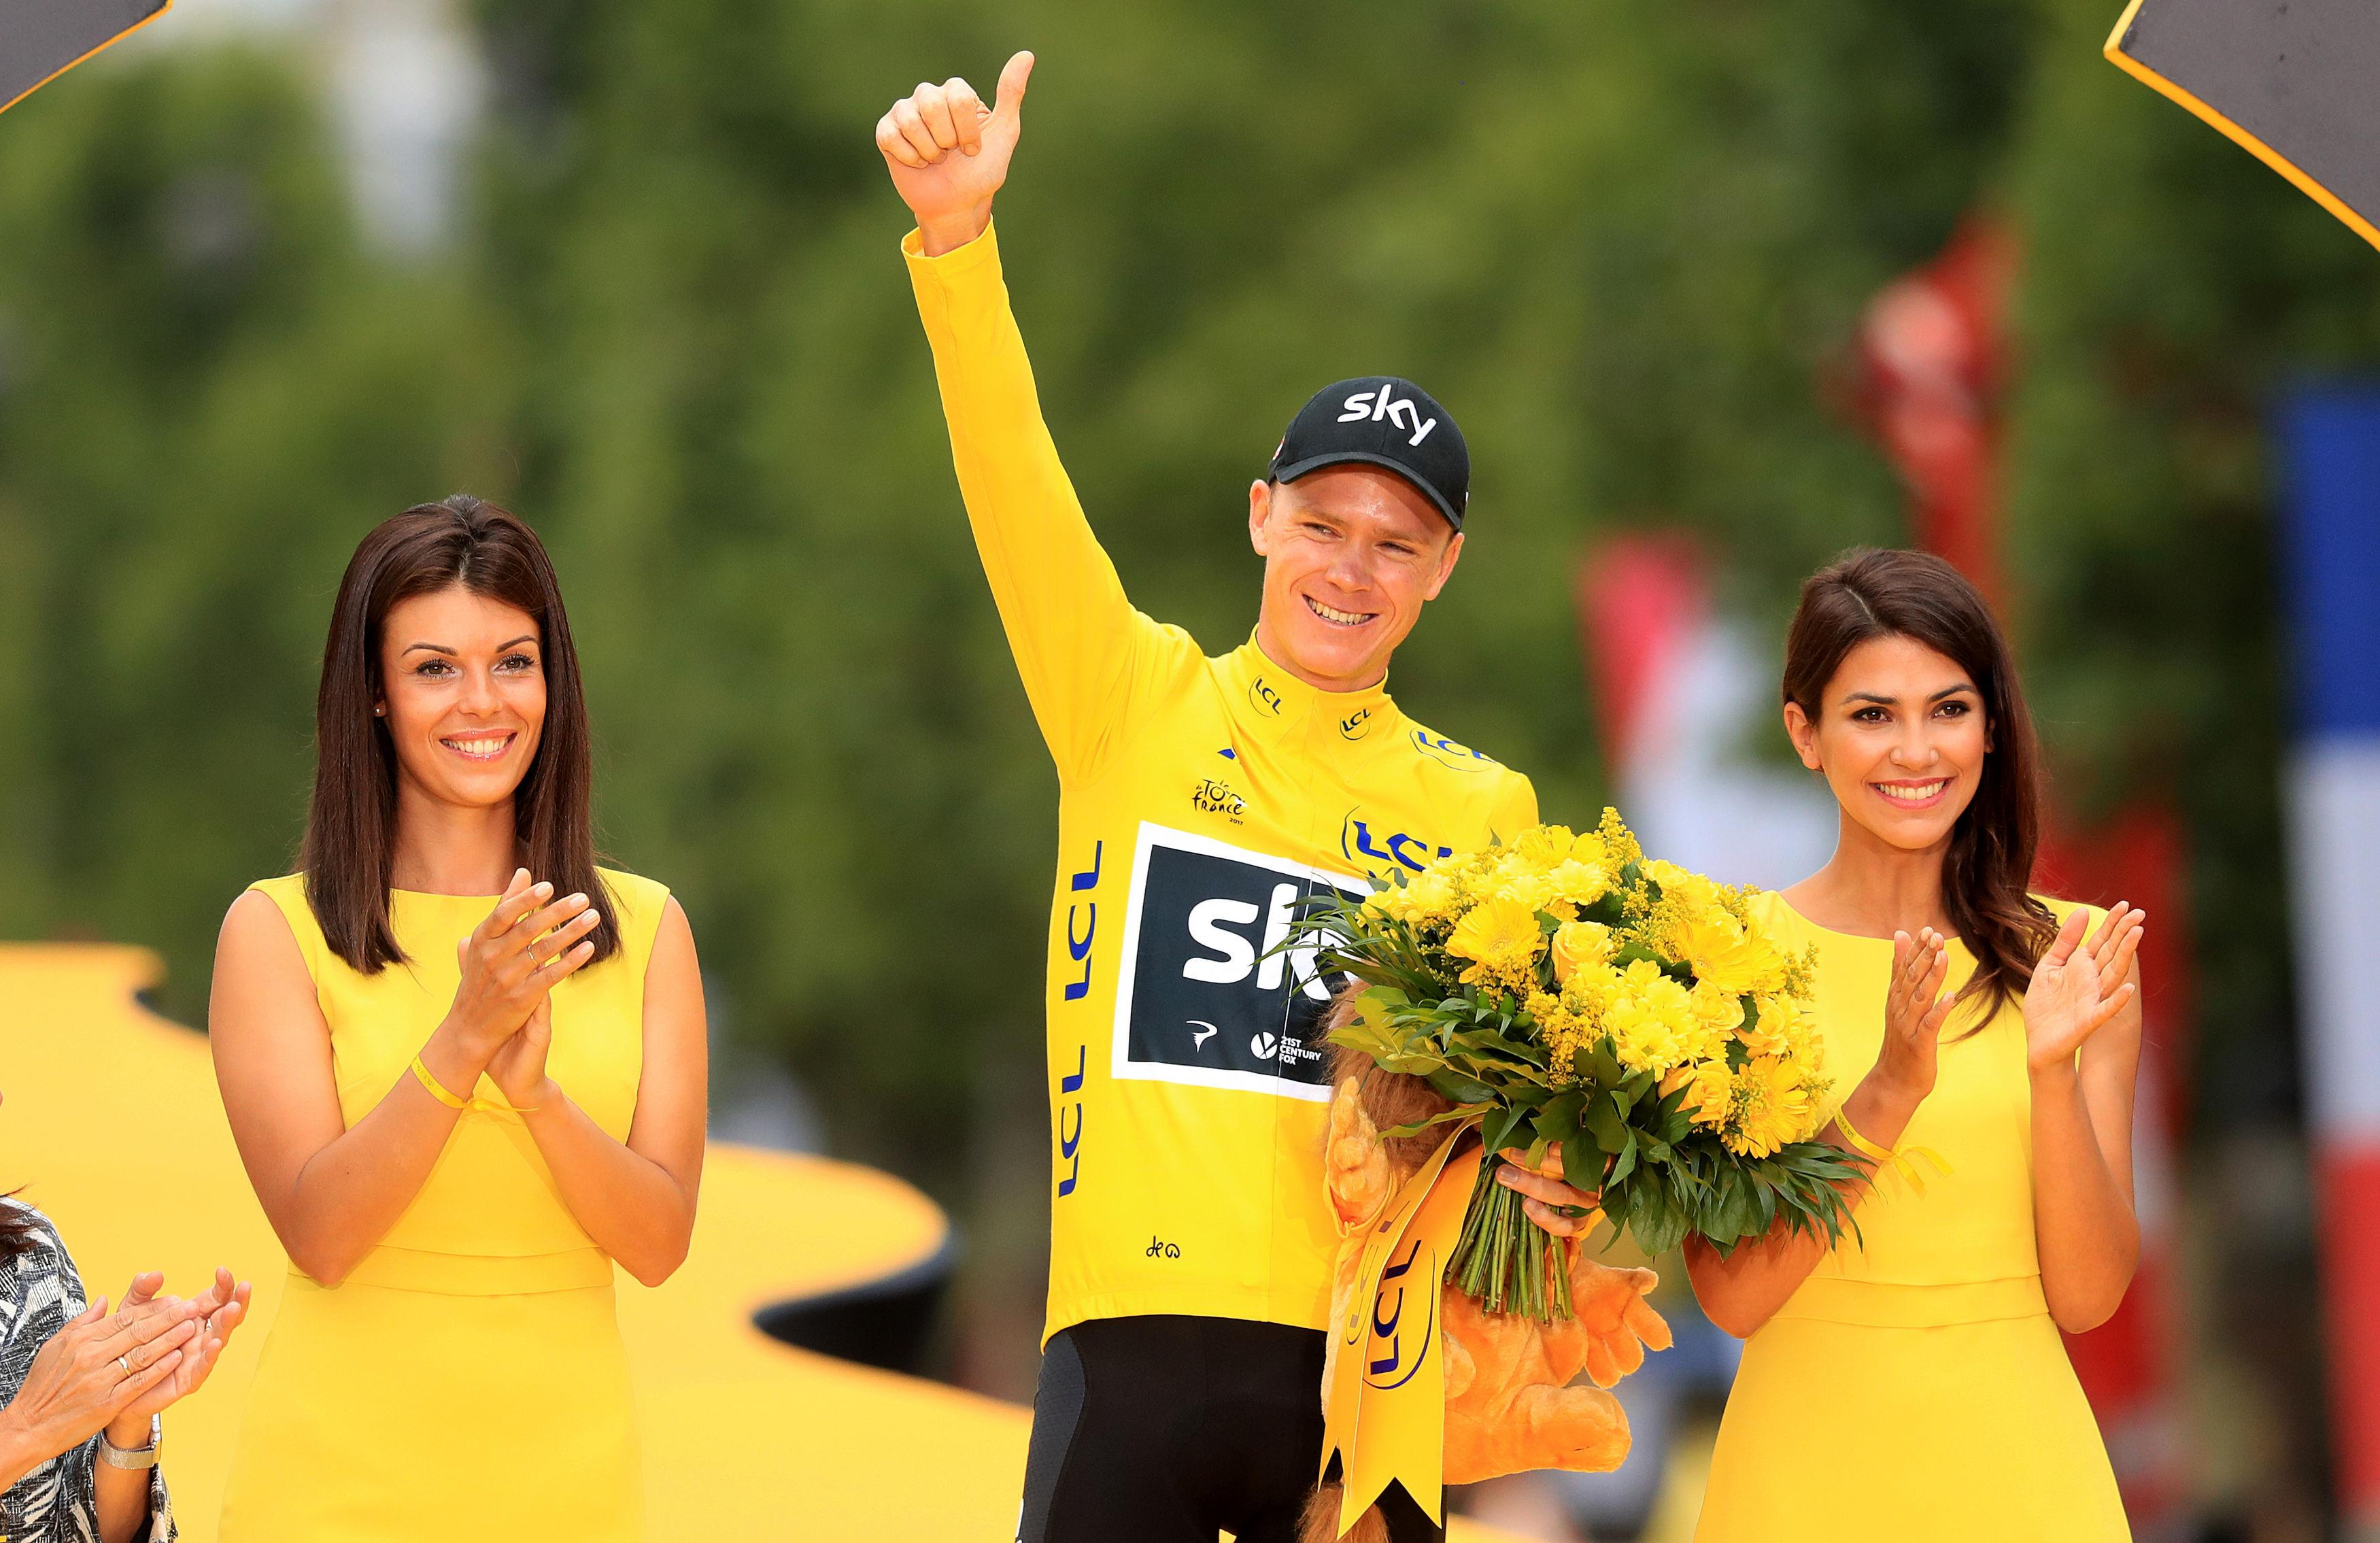 Froome won the Tour de France last year for the fourth time